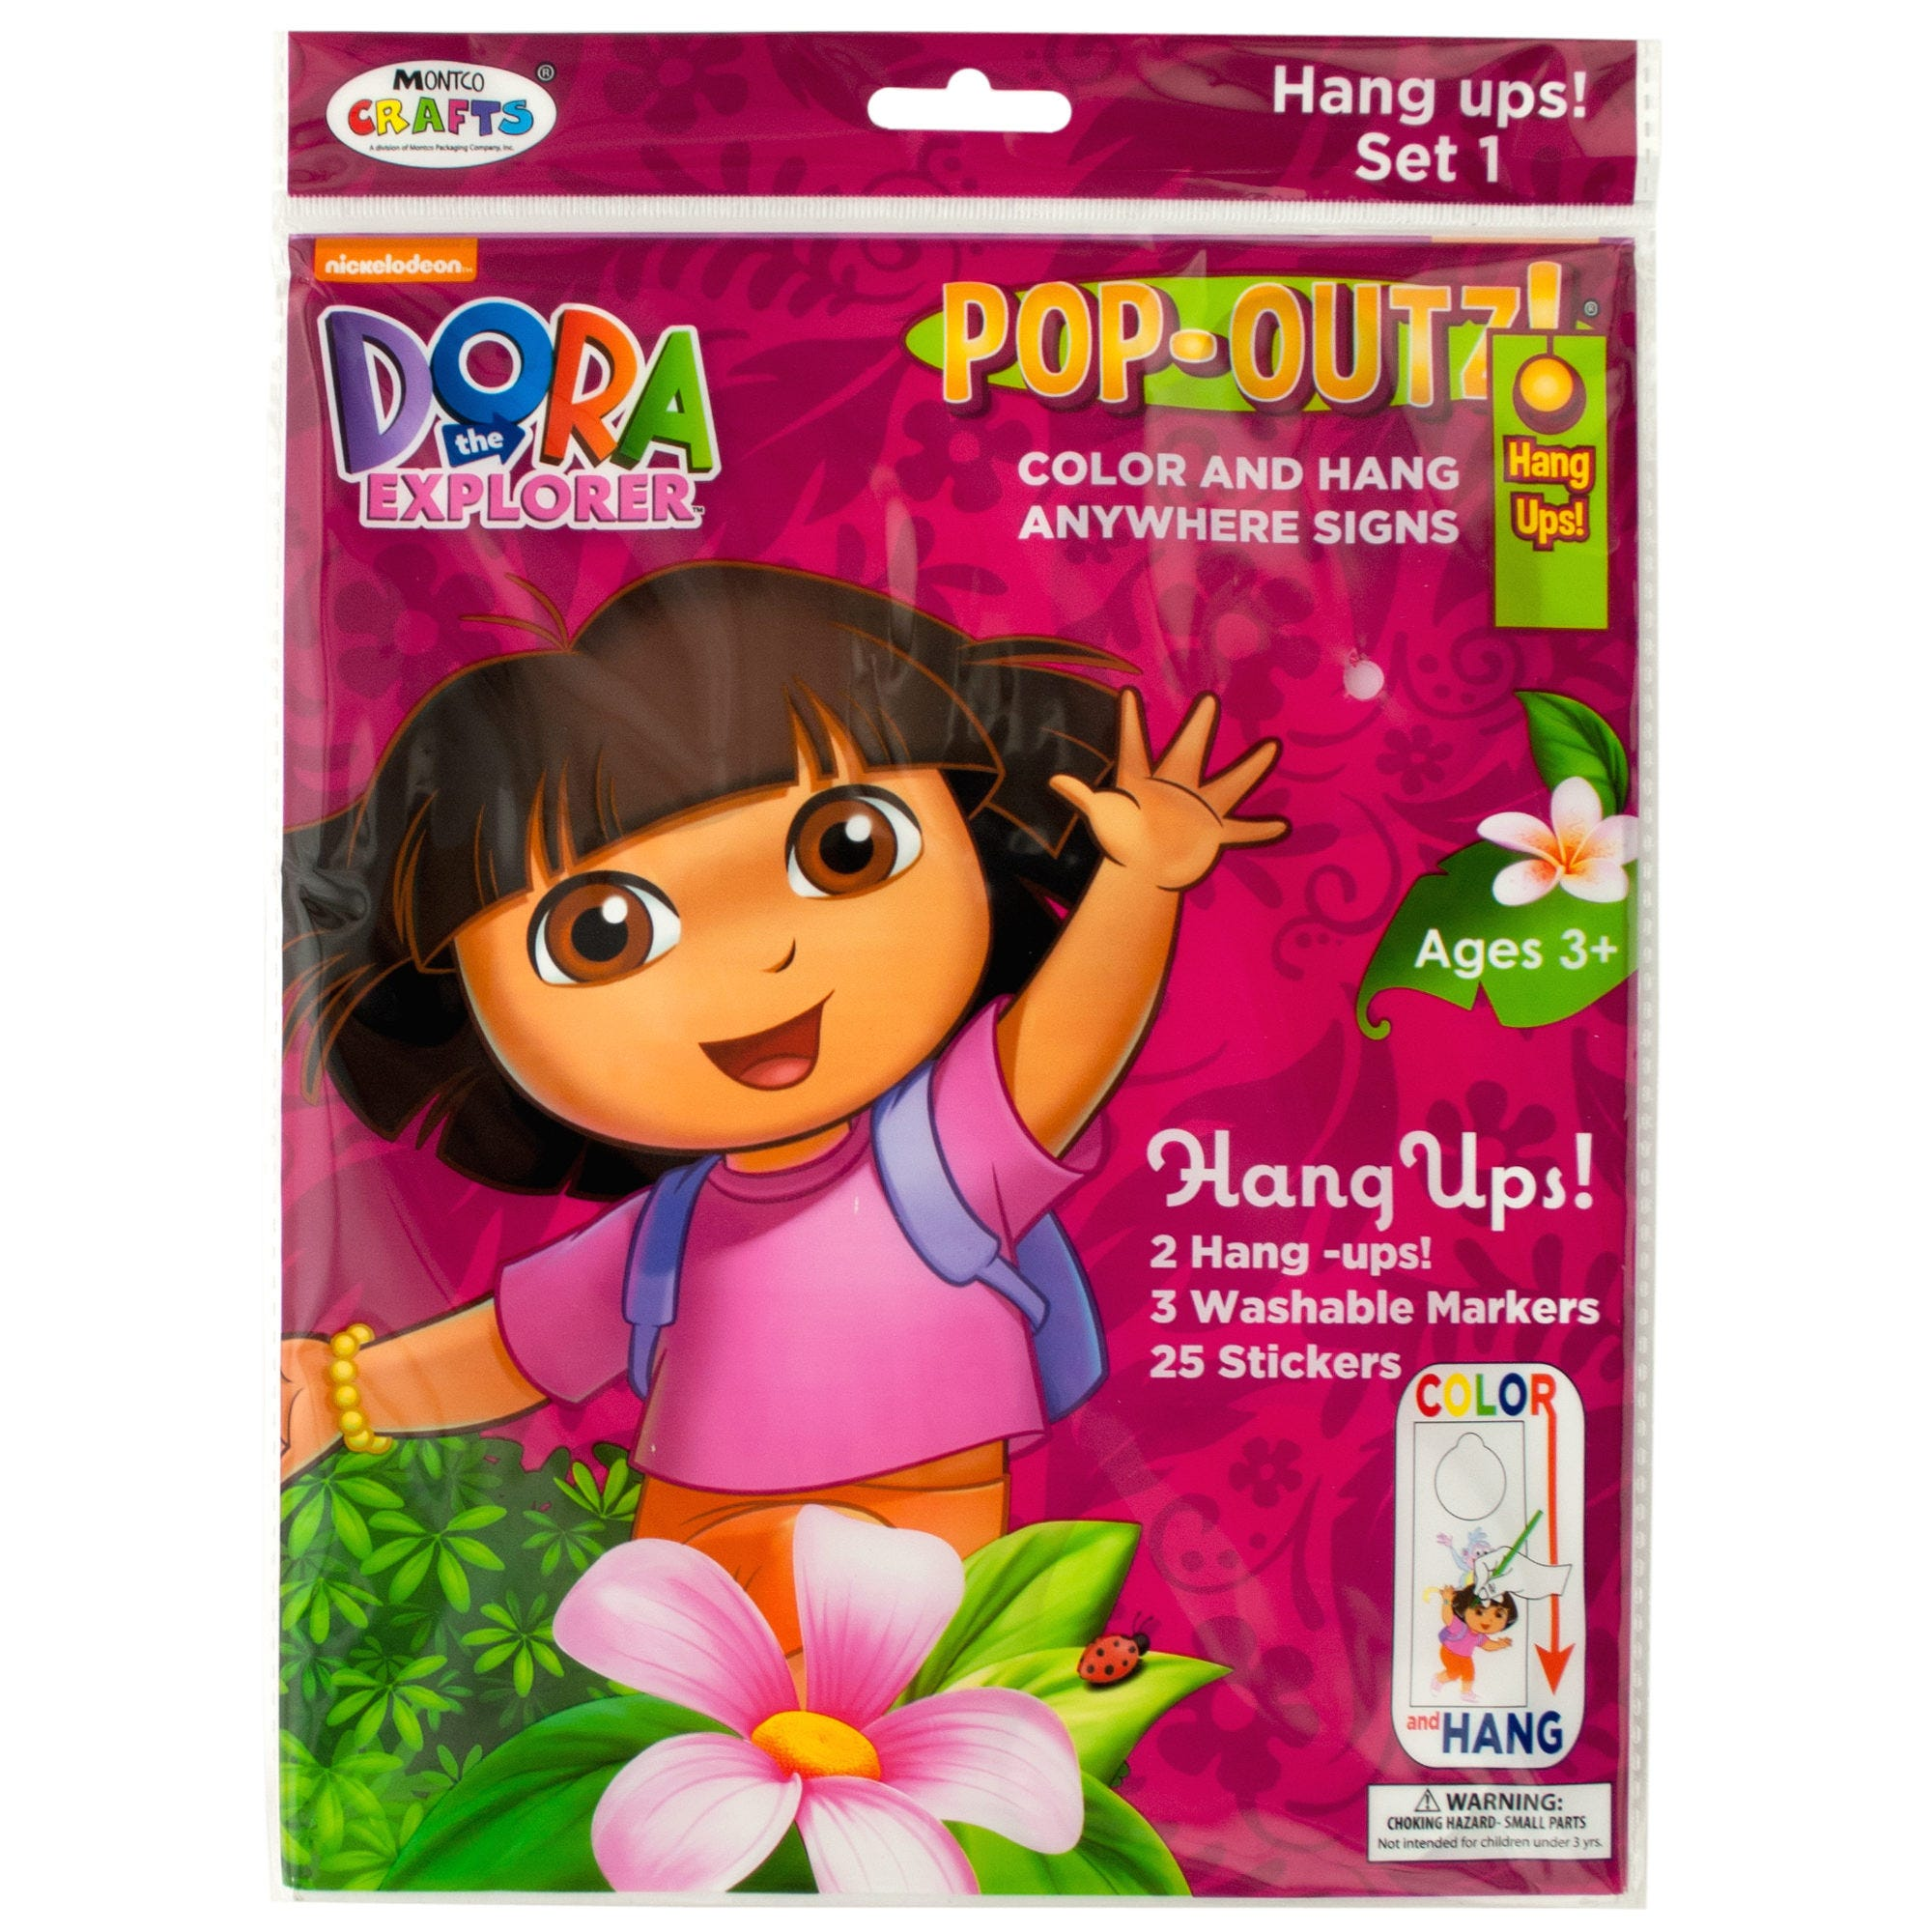 DORA-the-explorer-pop-outz-hang-ups-activity-set